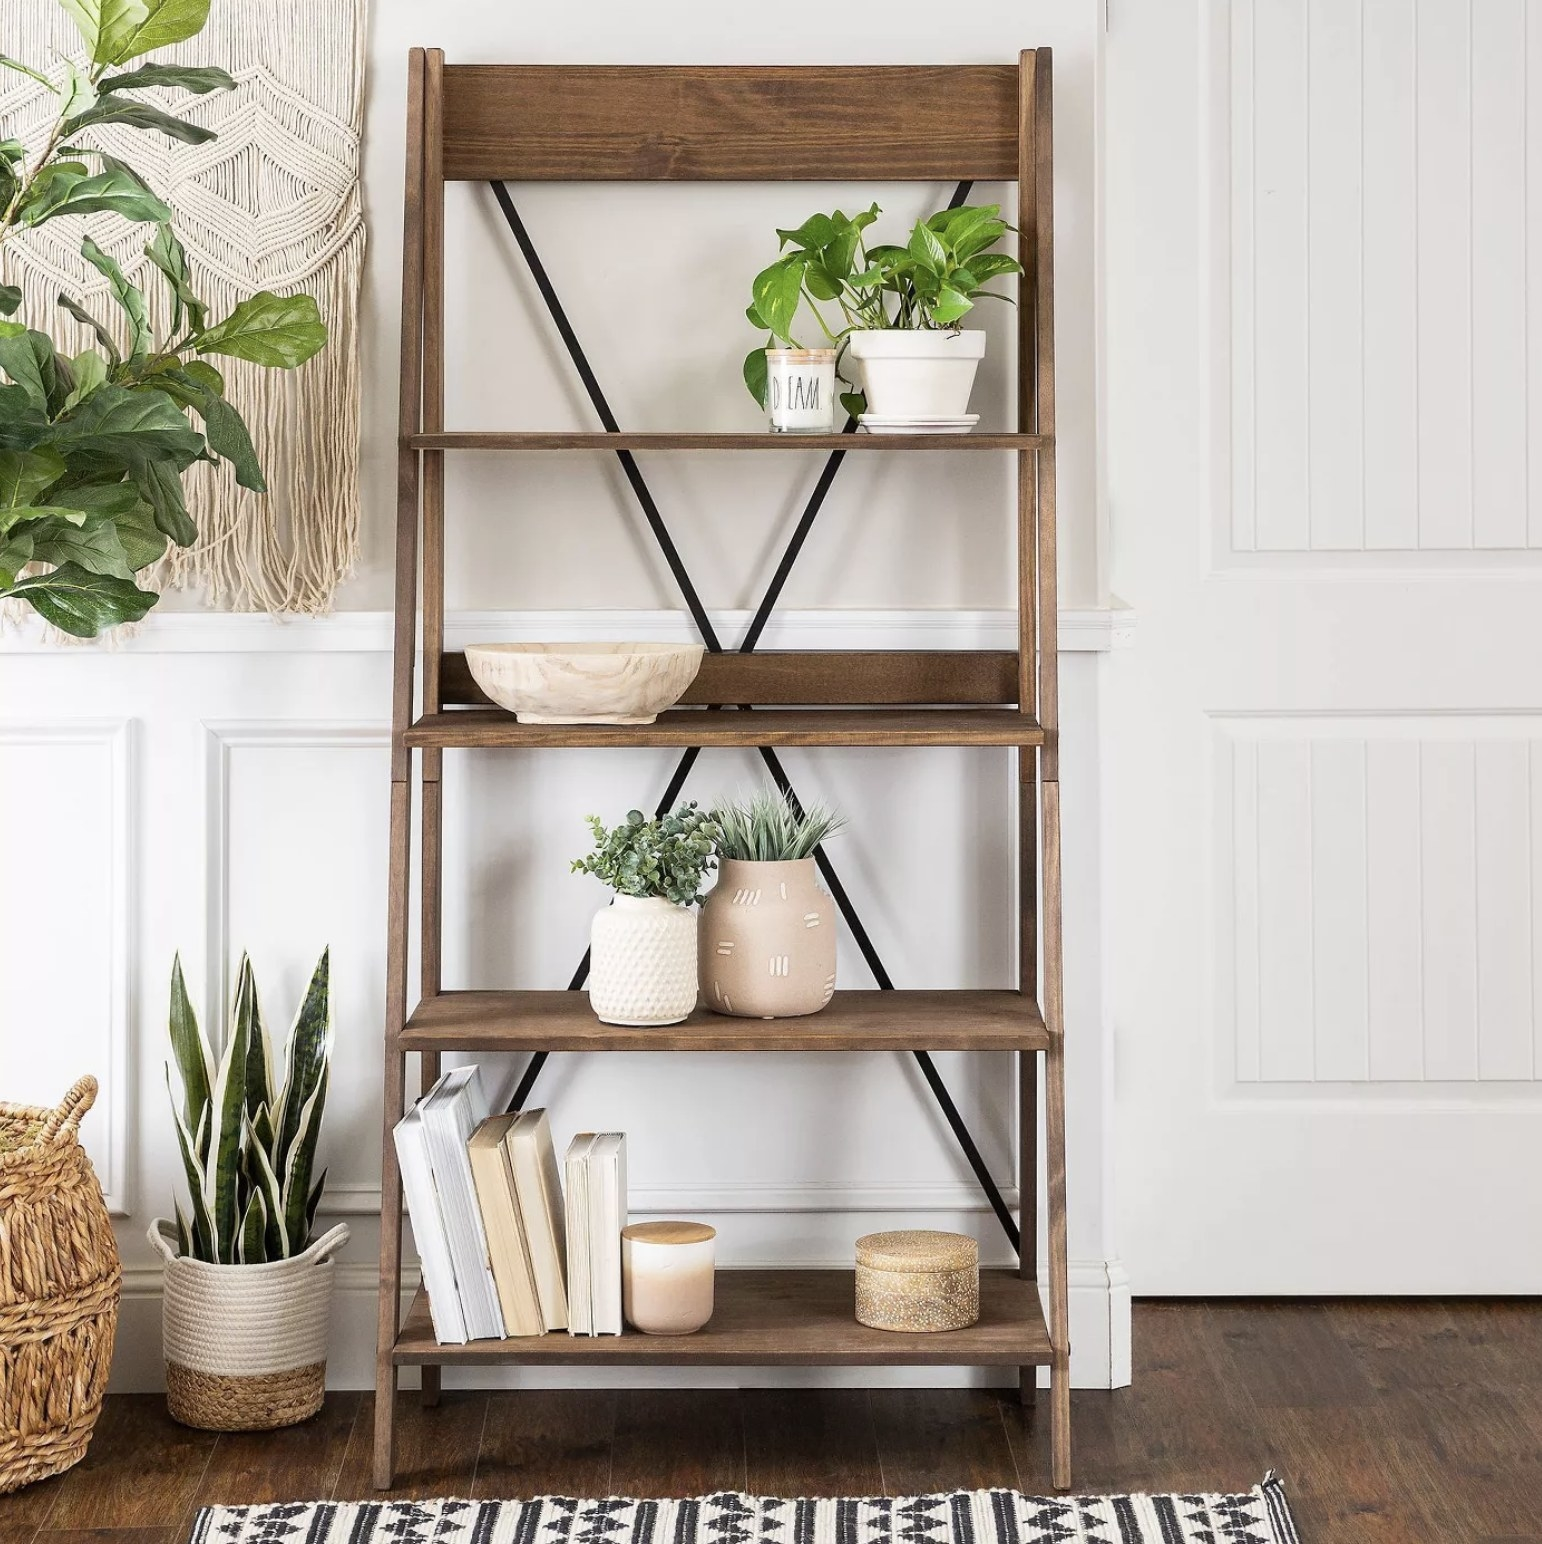 A light wood four-tier ladder bookshelf sits in a living space against the wall with decorative accents on it